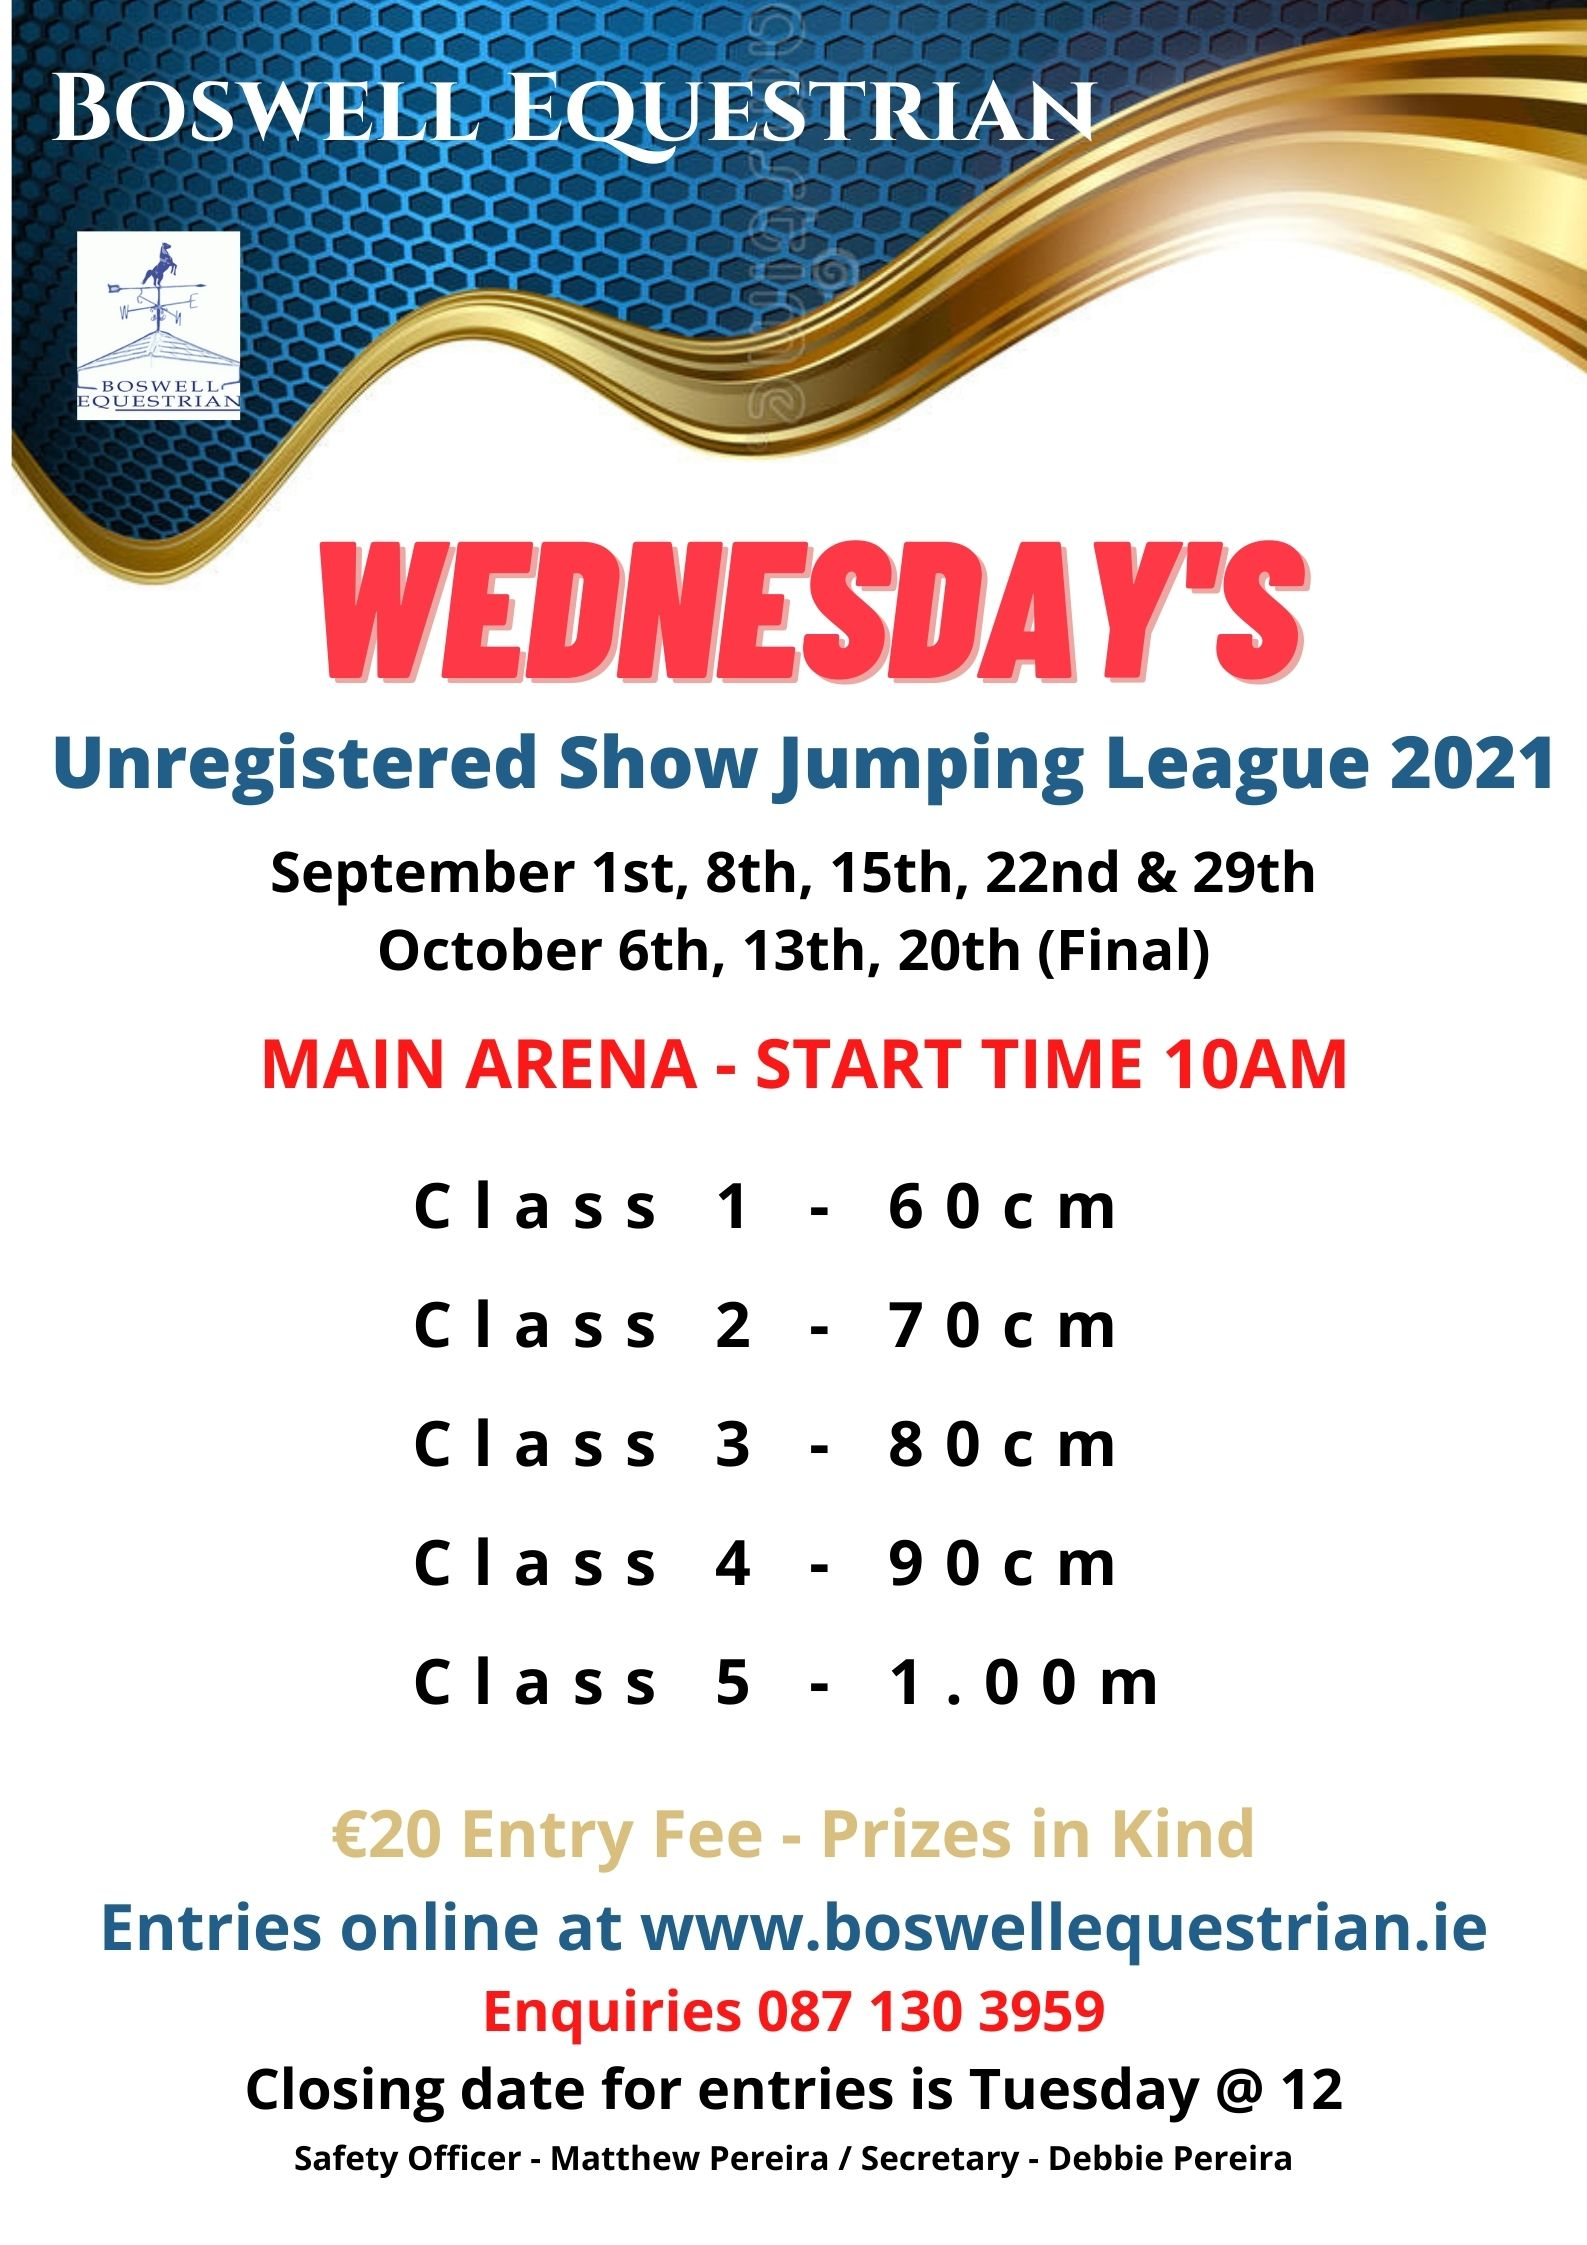 Unregistered Show Jumping League